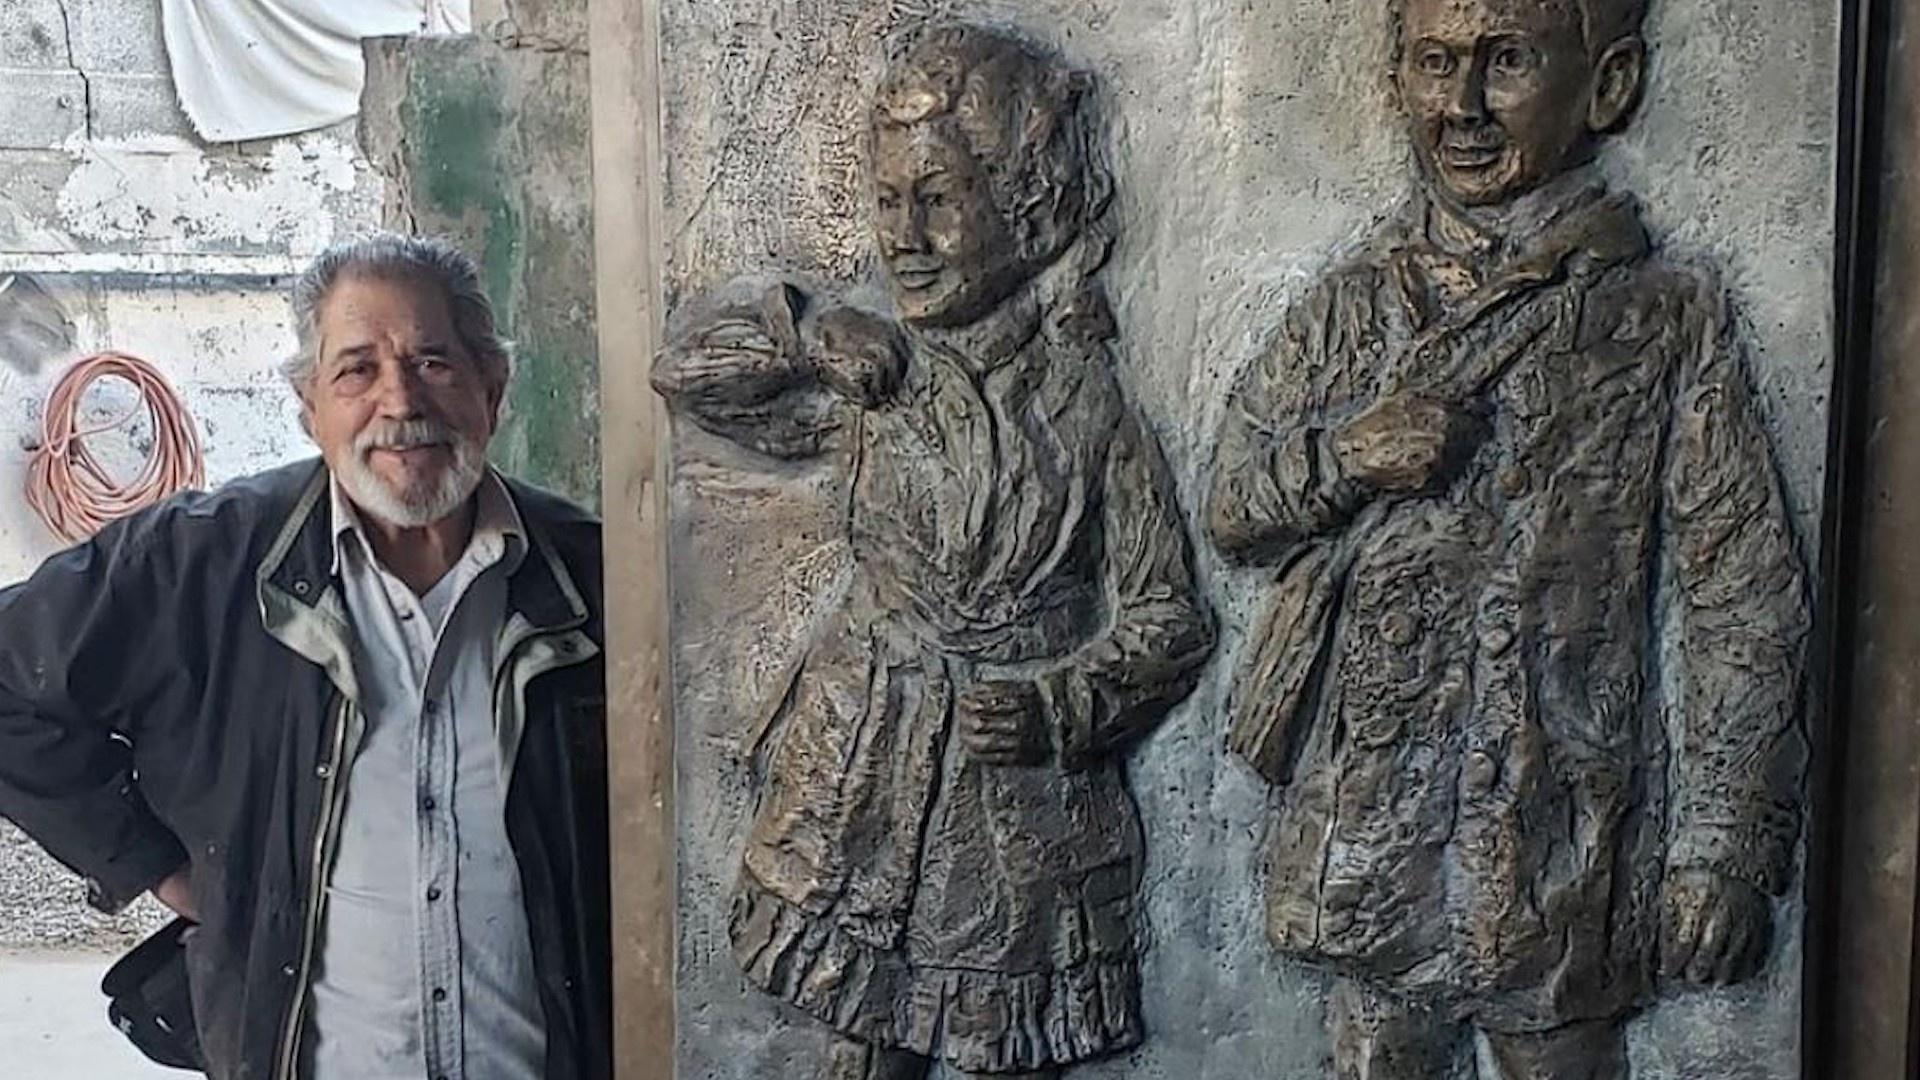 """A life-sized bronze relief sculpture commemorating the 1914 victory in educational desegregation will be placed inside the Alamosa Municipal Courthouse in 2022. The statue was designed, sculpted, and cast in bronze by Reynaldo """"Sonny"""" Rivera of New Mexico."""